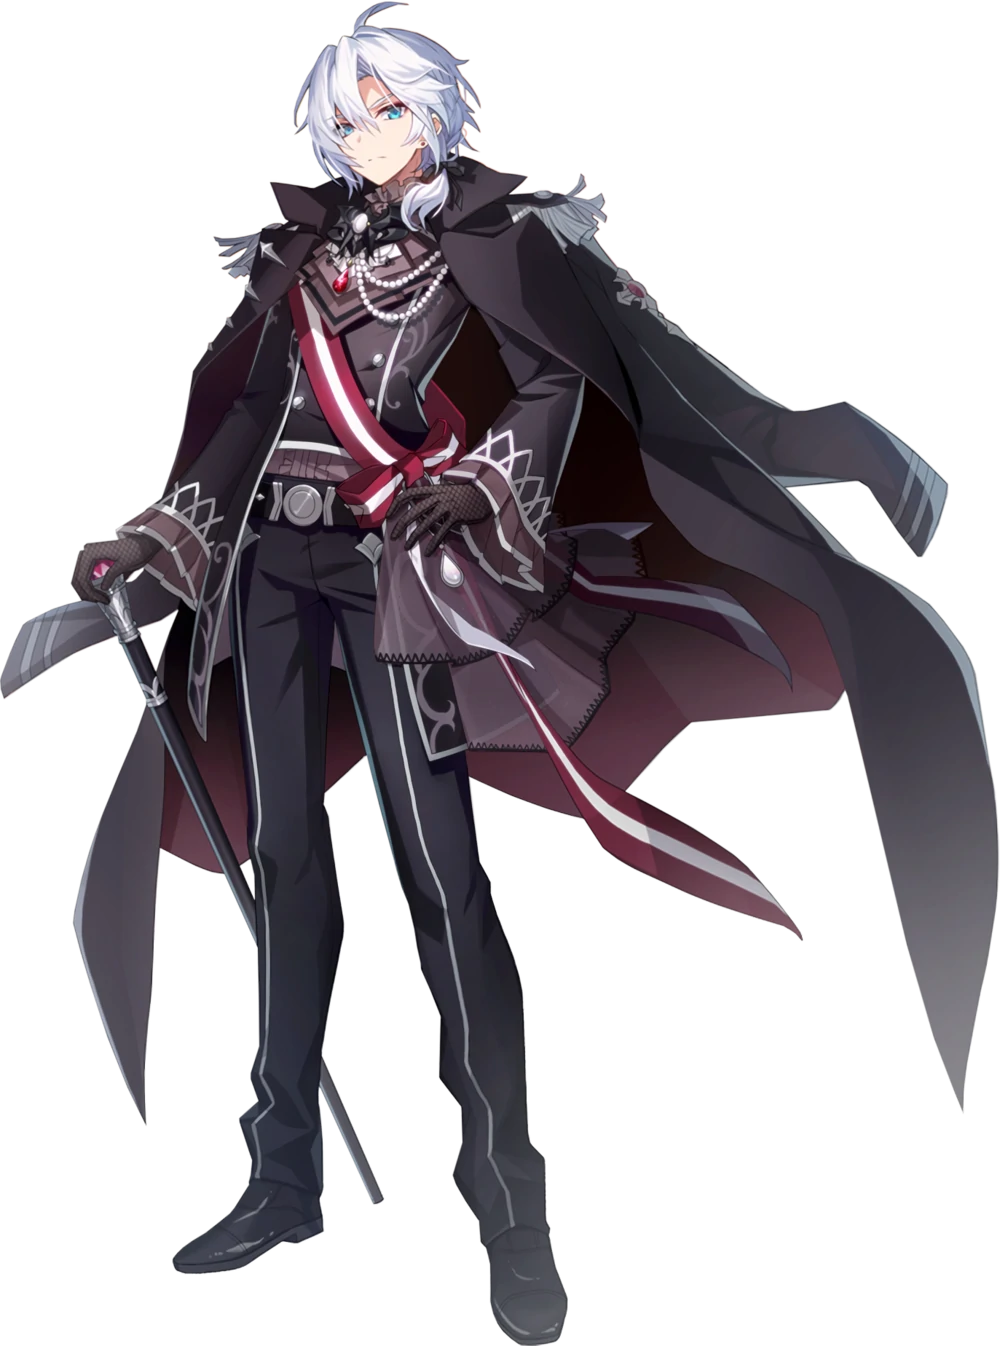 Lass Grand Chase Dimensional Chaser Grand Chase Wiki Fandom Powered By Wikia Anime Character Design Concept Art Characters Anime Knight